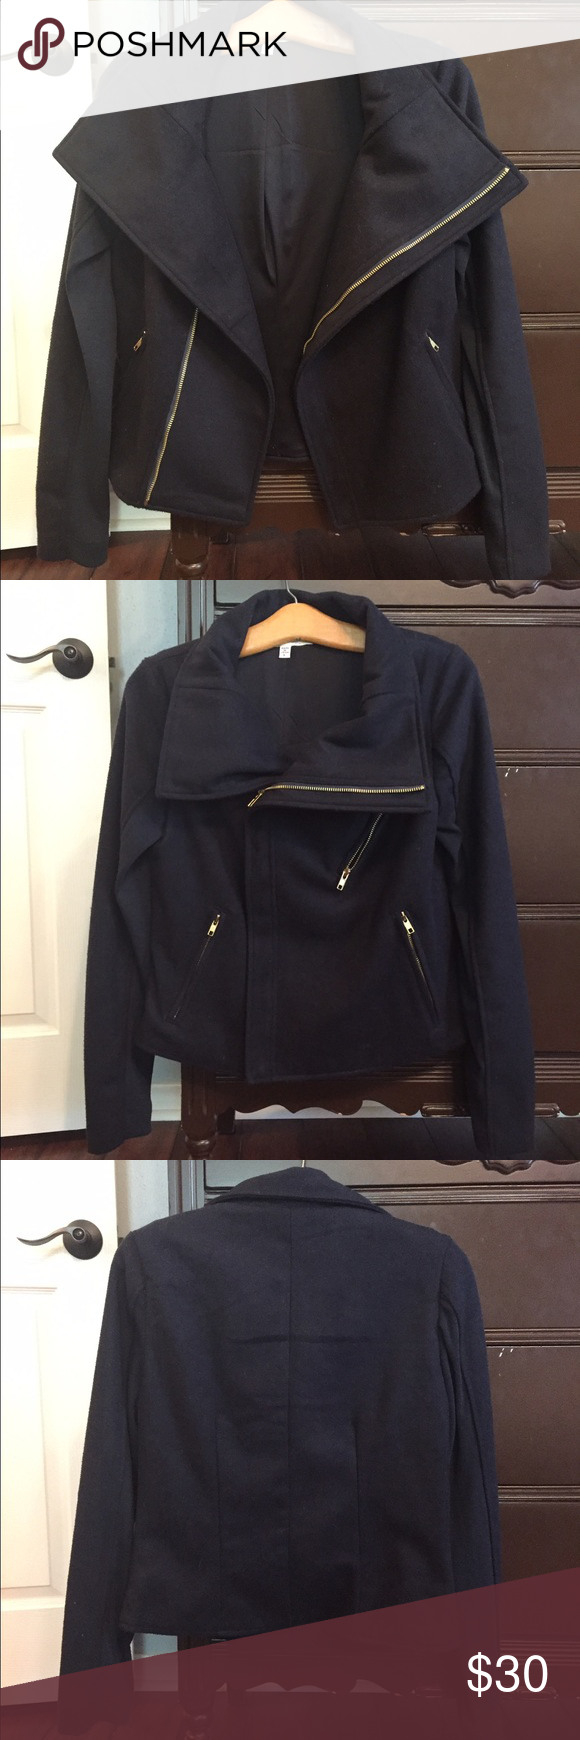 Navy blue felt/cotton jacket Stay warm in this cute navy blue jacket. Comfortable cotton sleeves. Complete with gold accent zippers! Francesca's Collections Jackets & Coats